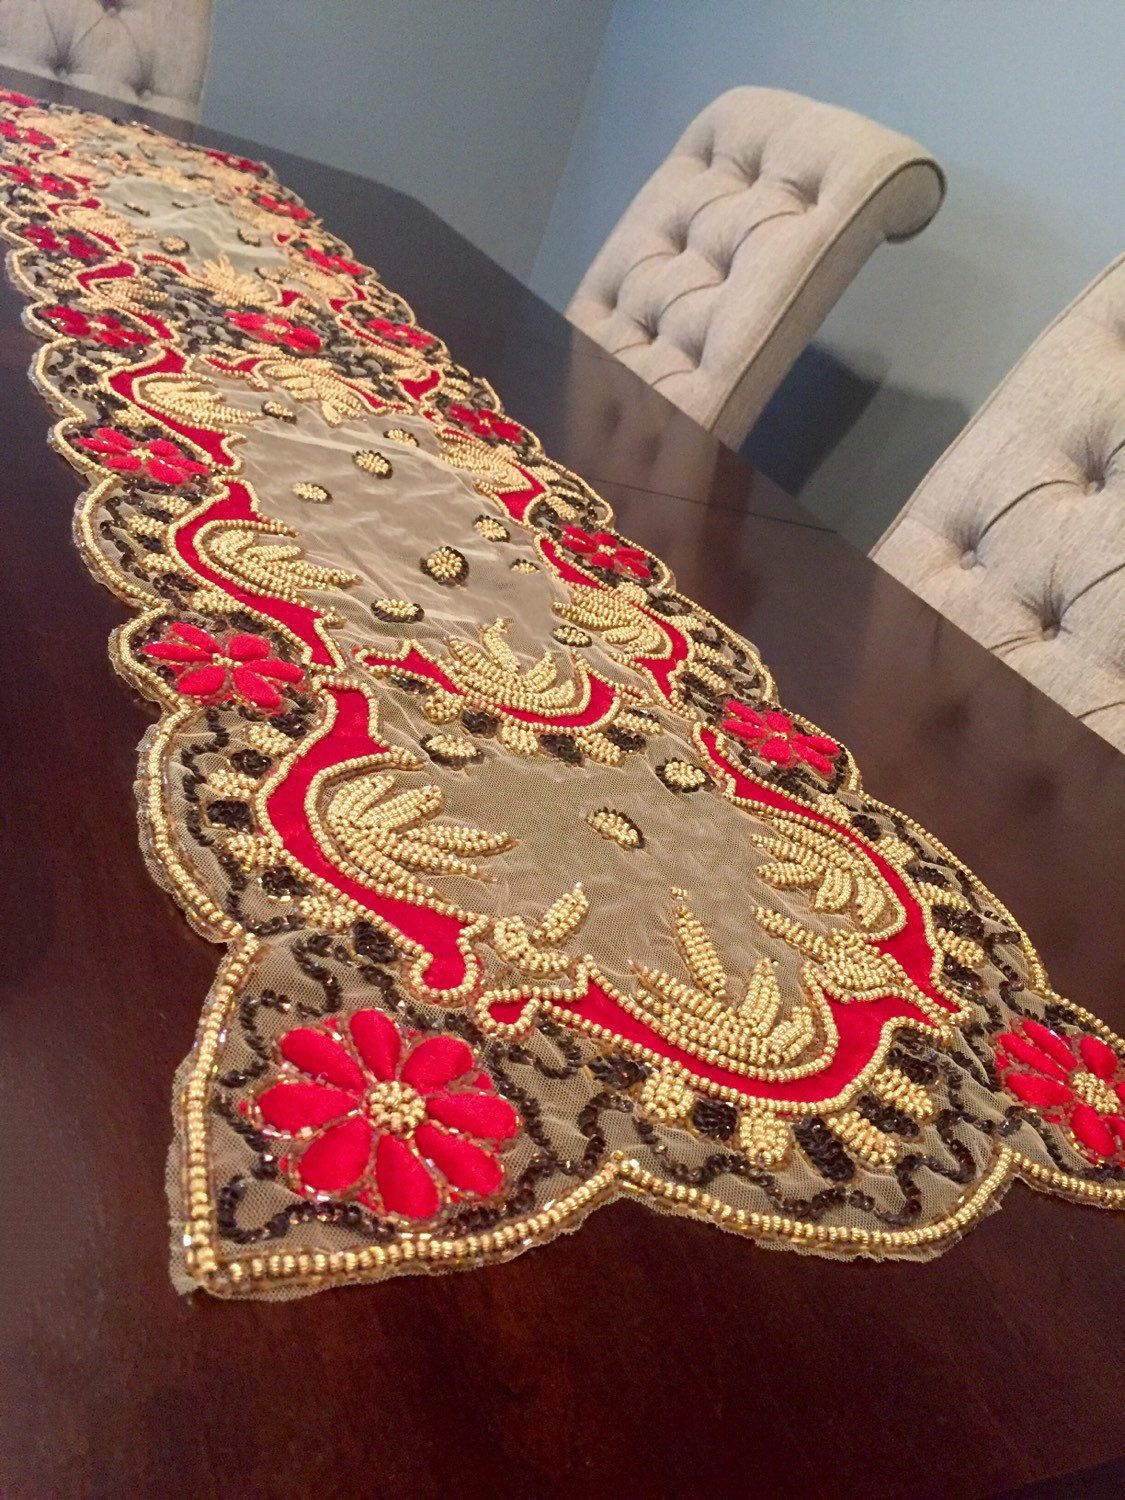 Table Runner, Sequin Table Runner, Christmas Decor, HAND BEADED Red And  Gold Table Runner, Home Decor, Table Runner, Christmas, Sequin Table By ...